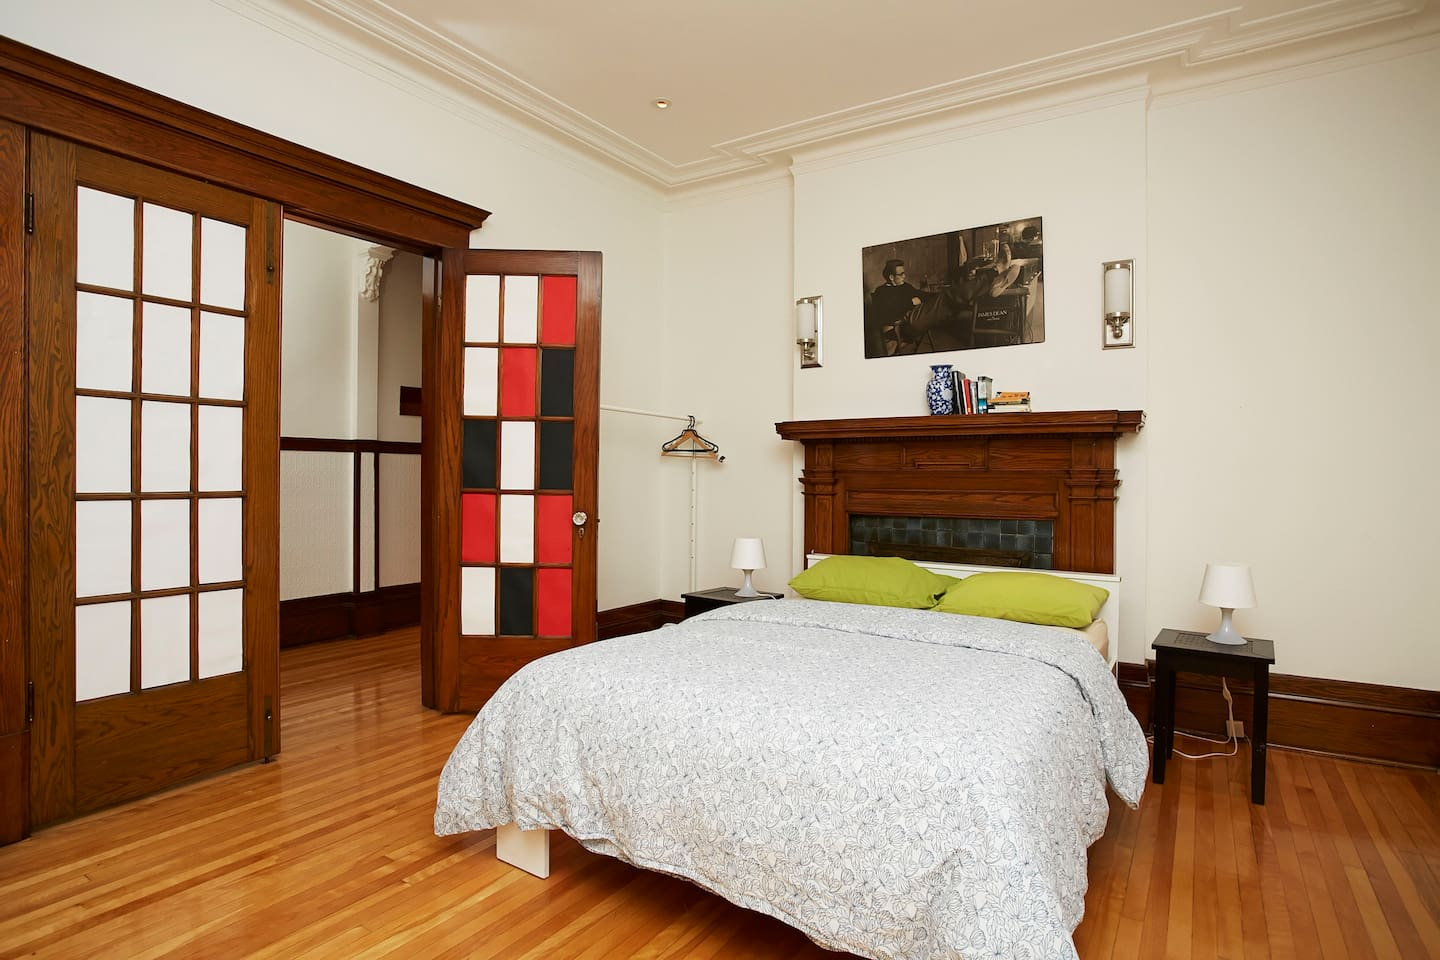 Rooms #1 and #2: Large space with two rooms, each with a double bed. The rooms are separated by a large French door and curtains. Each room has its private entrance.